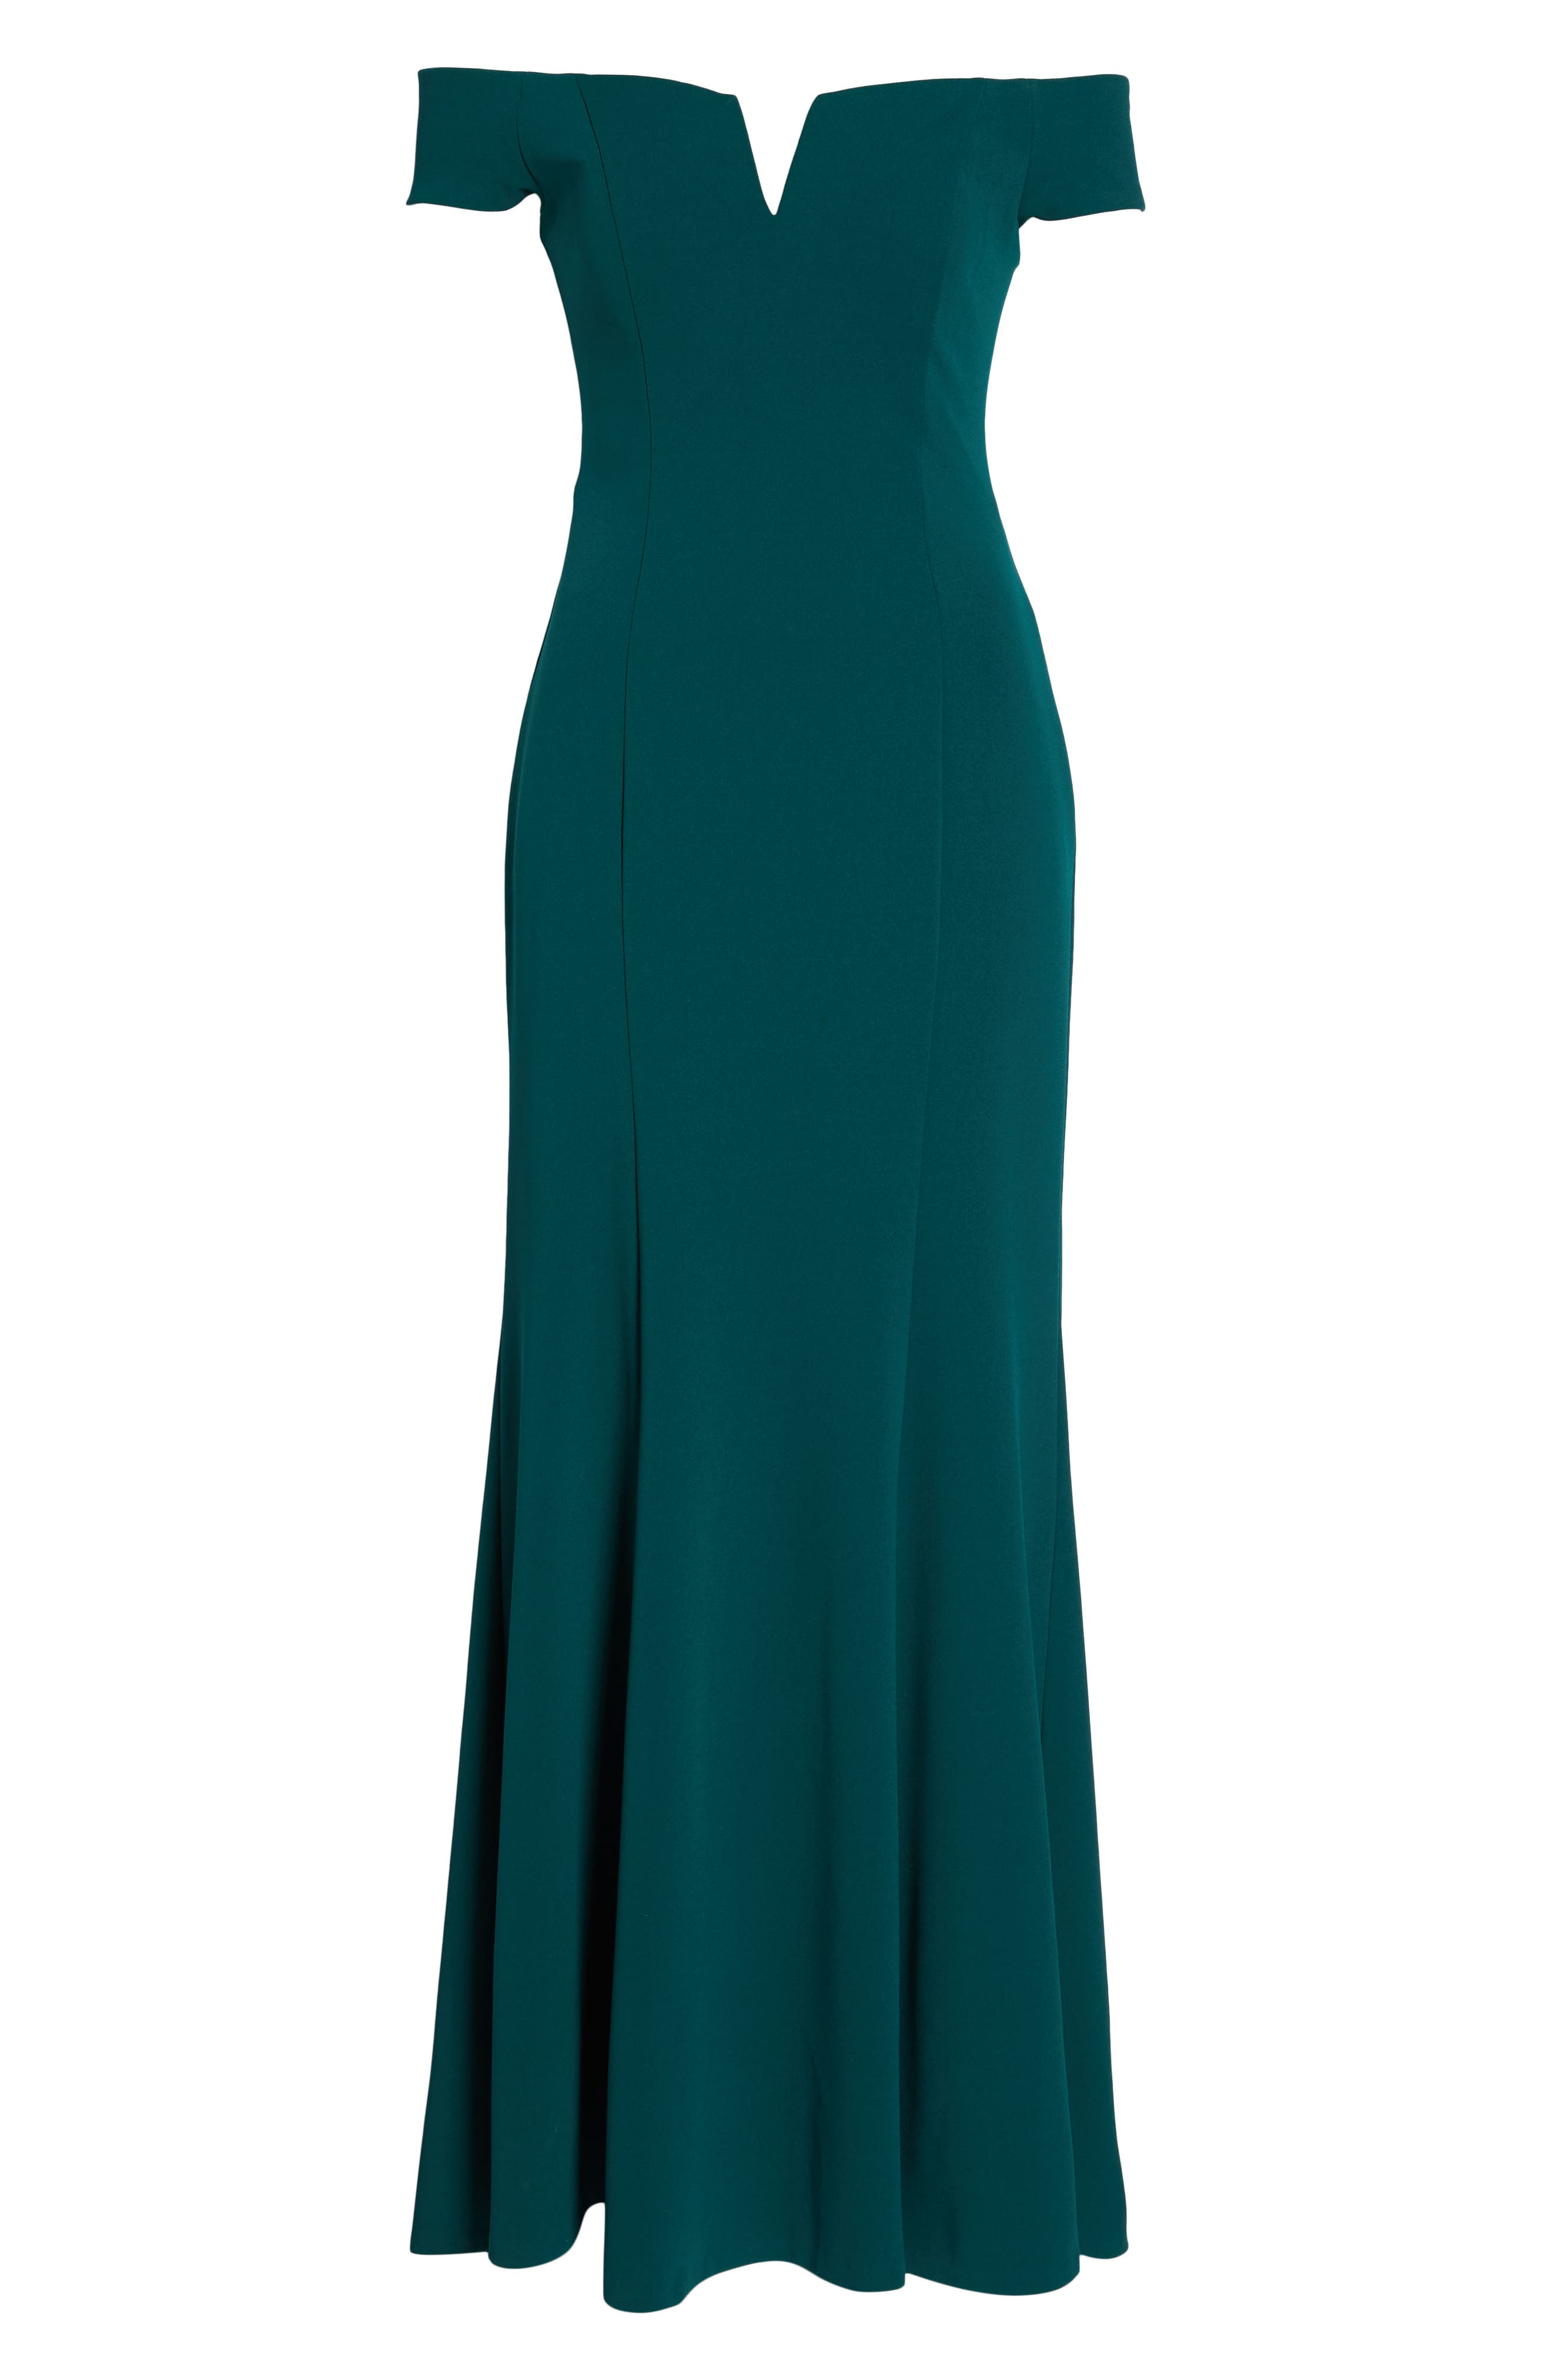 Notched Off the Shoulder Trumpet Gown,                             Alternate thumbnail 7, color,                             EMERALD